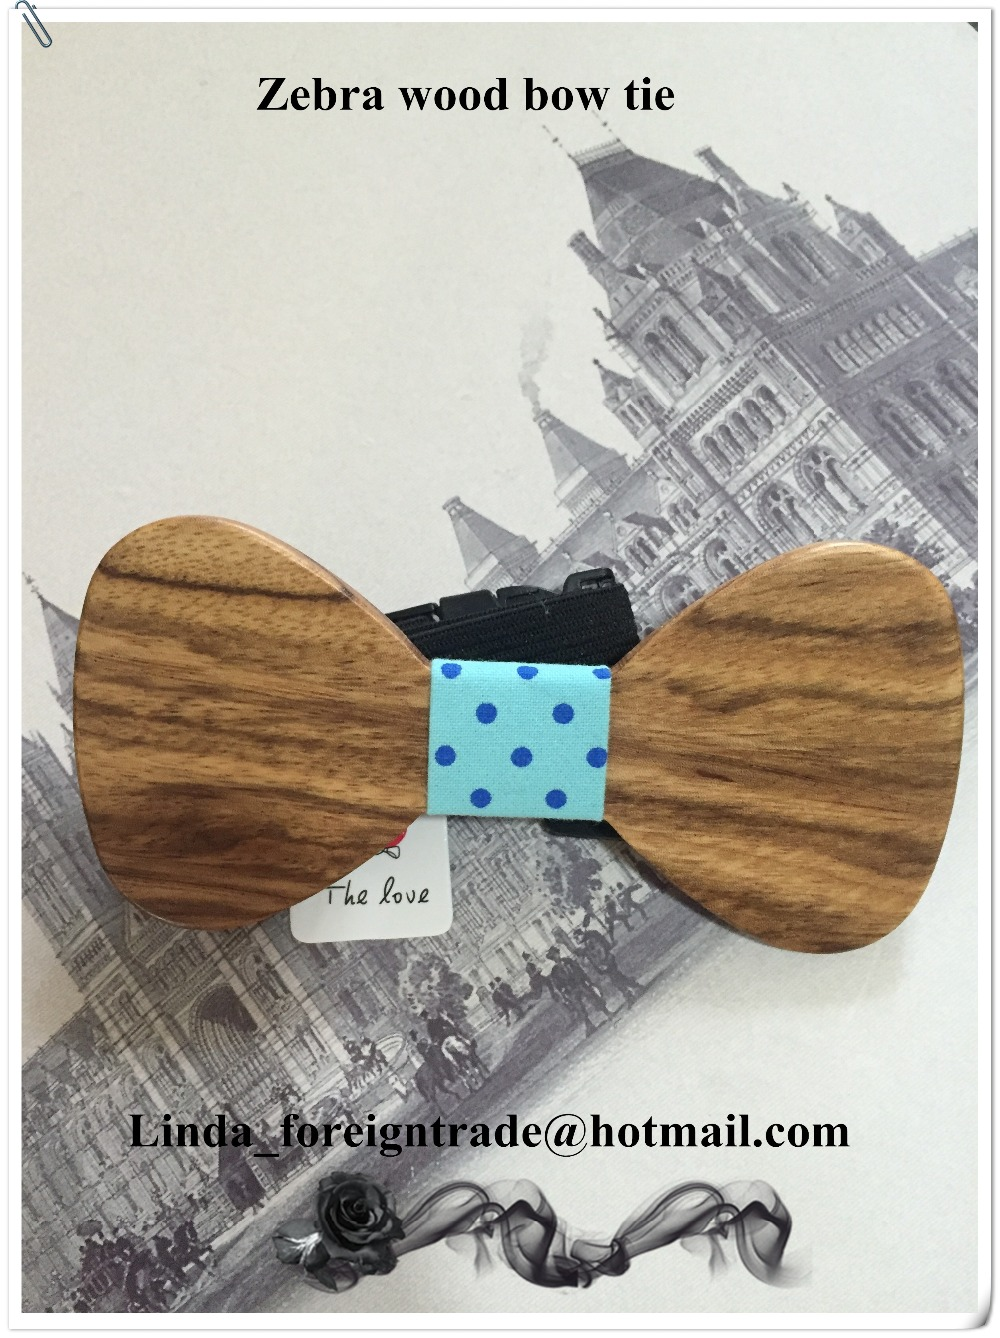 Christmas gifts Fun personality men leisure wooden bow ties bowtie